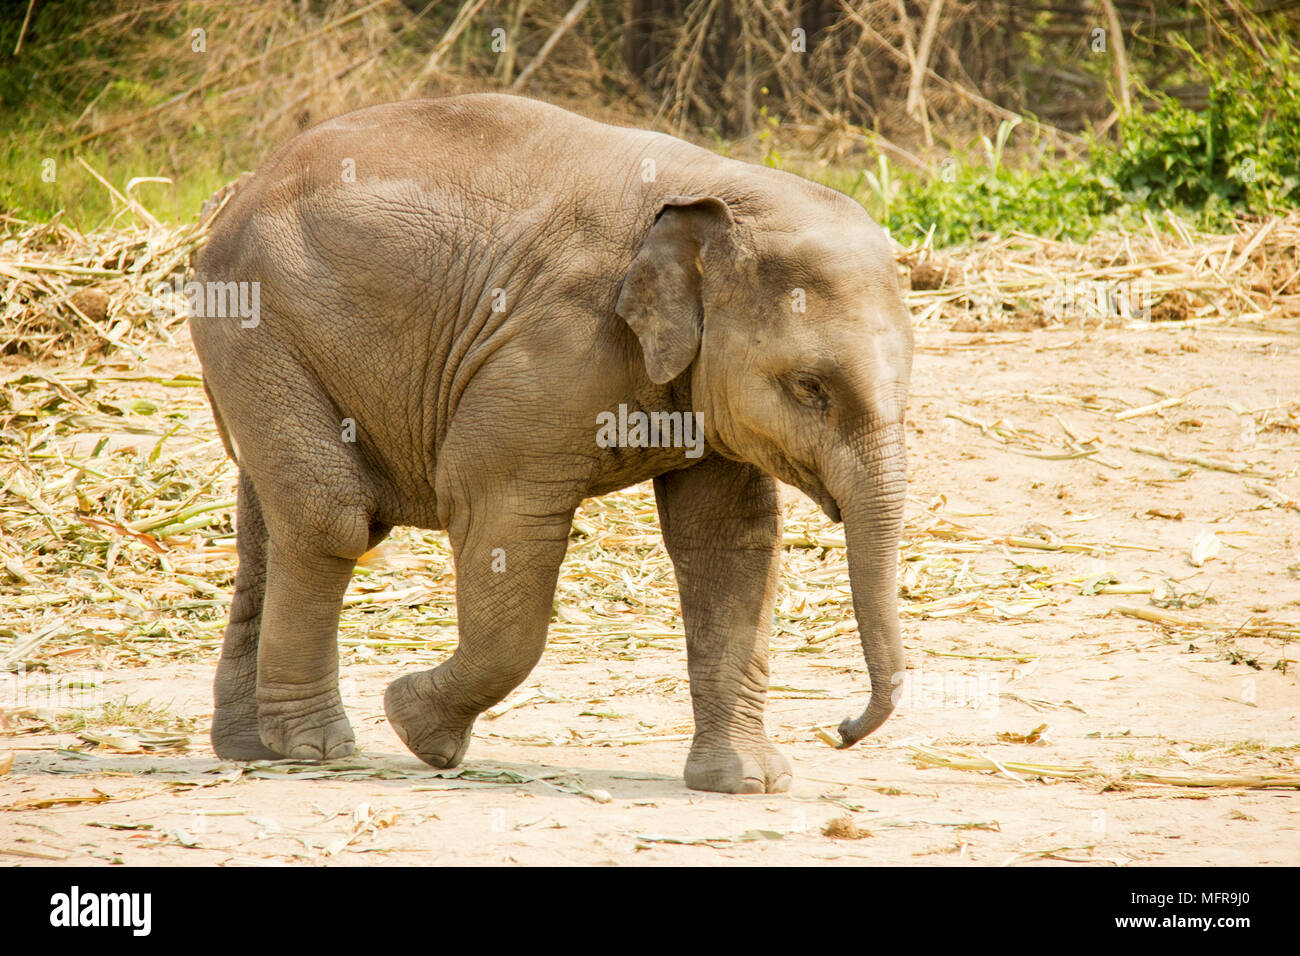 Baby Asian elephant walking isolated in nature - Stock Image